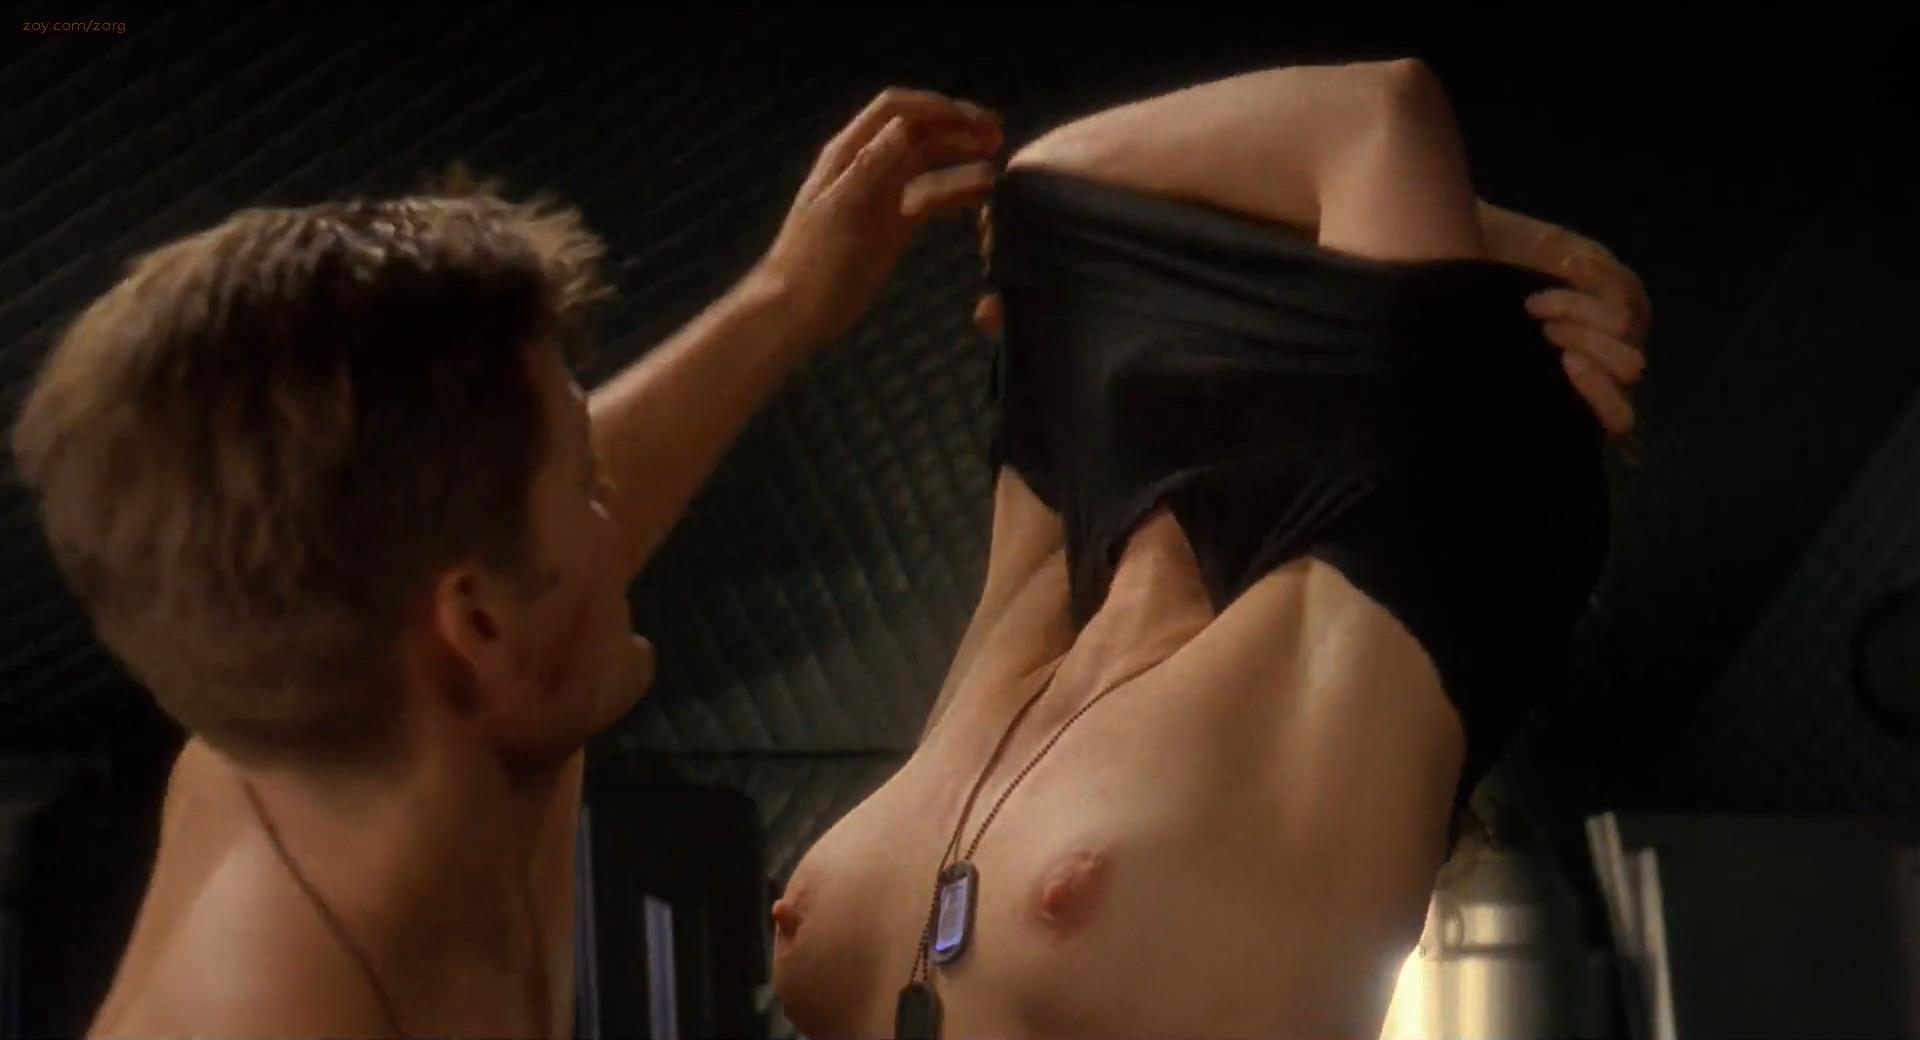 girl starship troopers naked